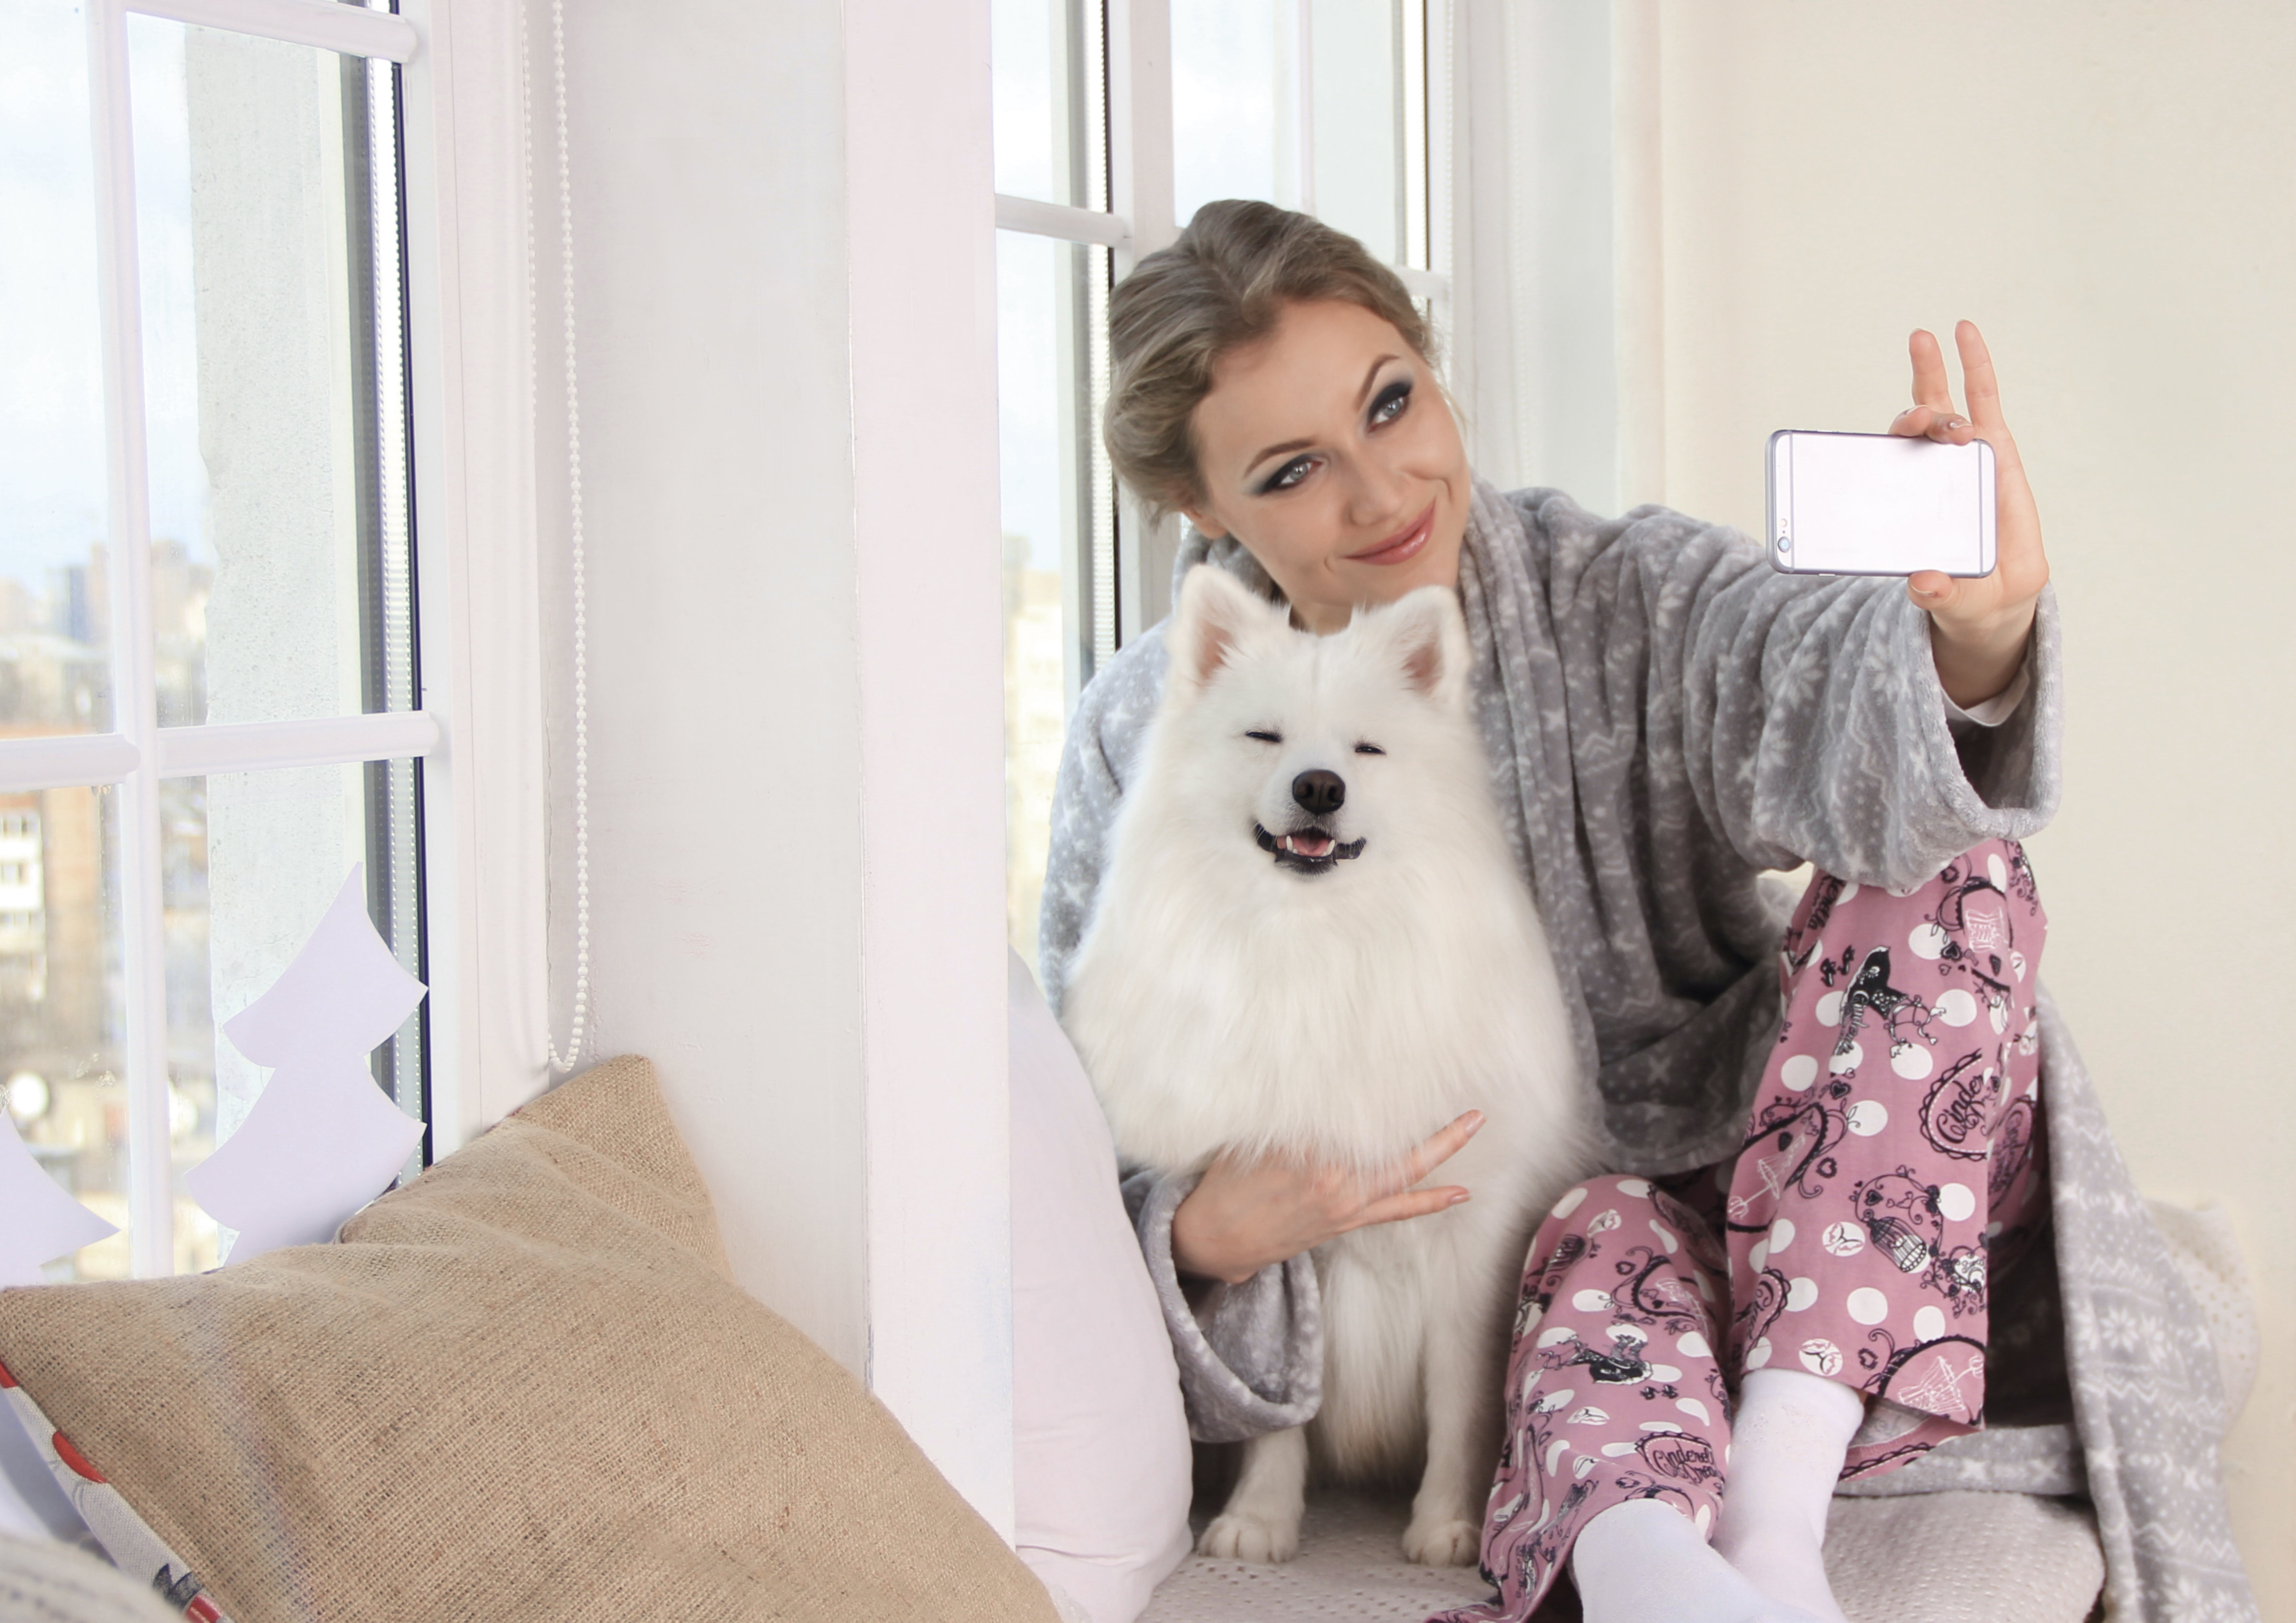 Woman Taking a Photo of Herself With White Dog